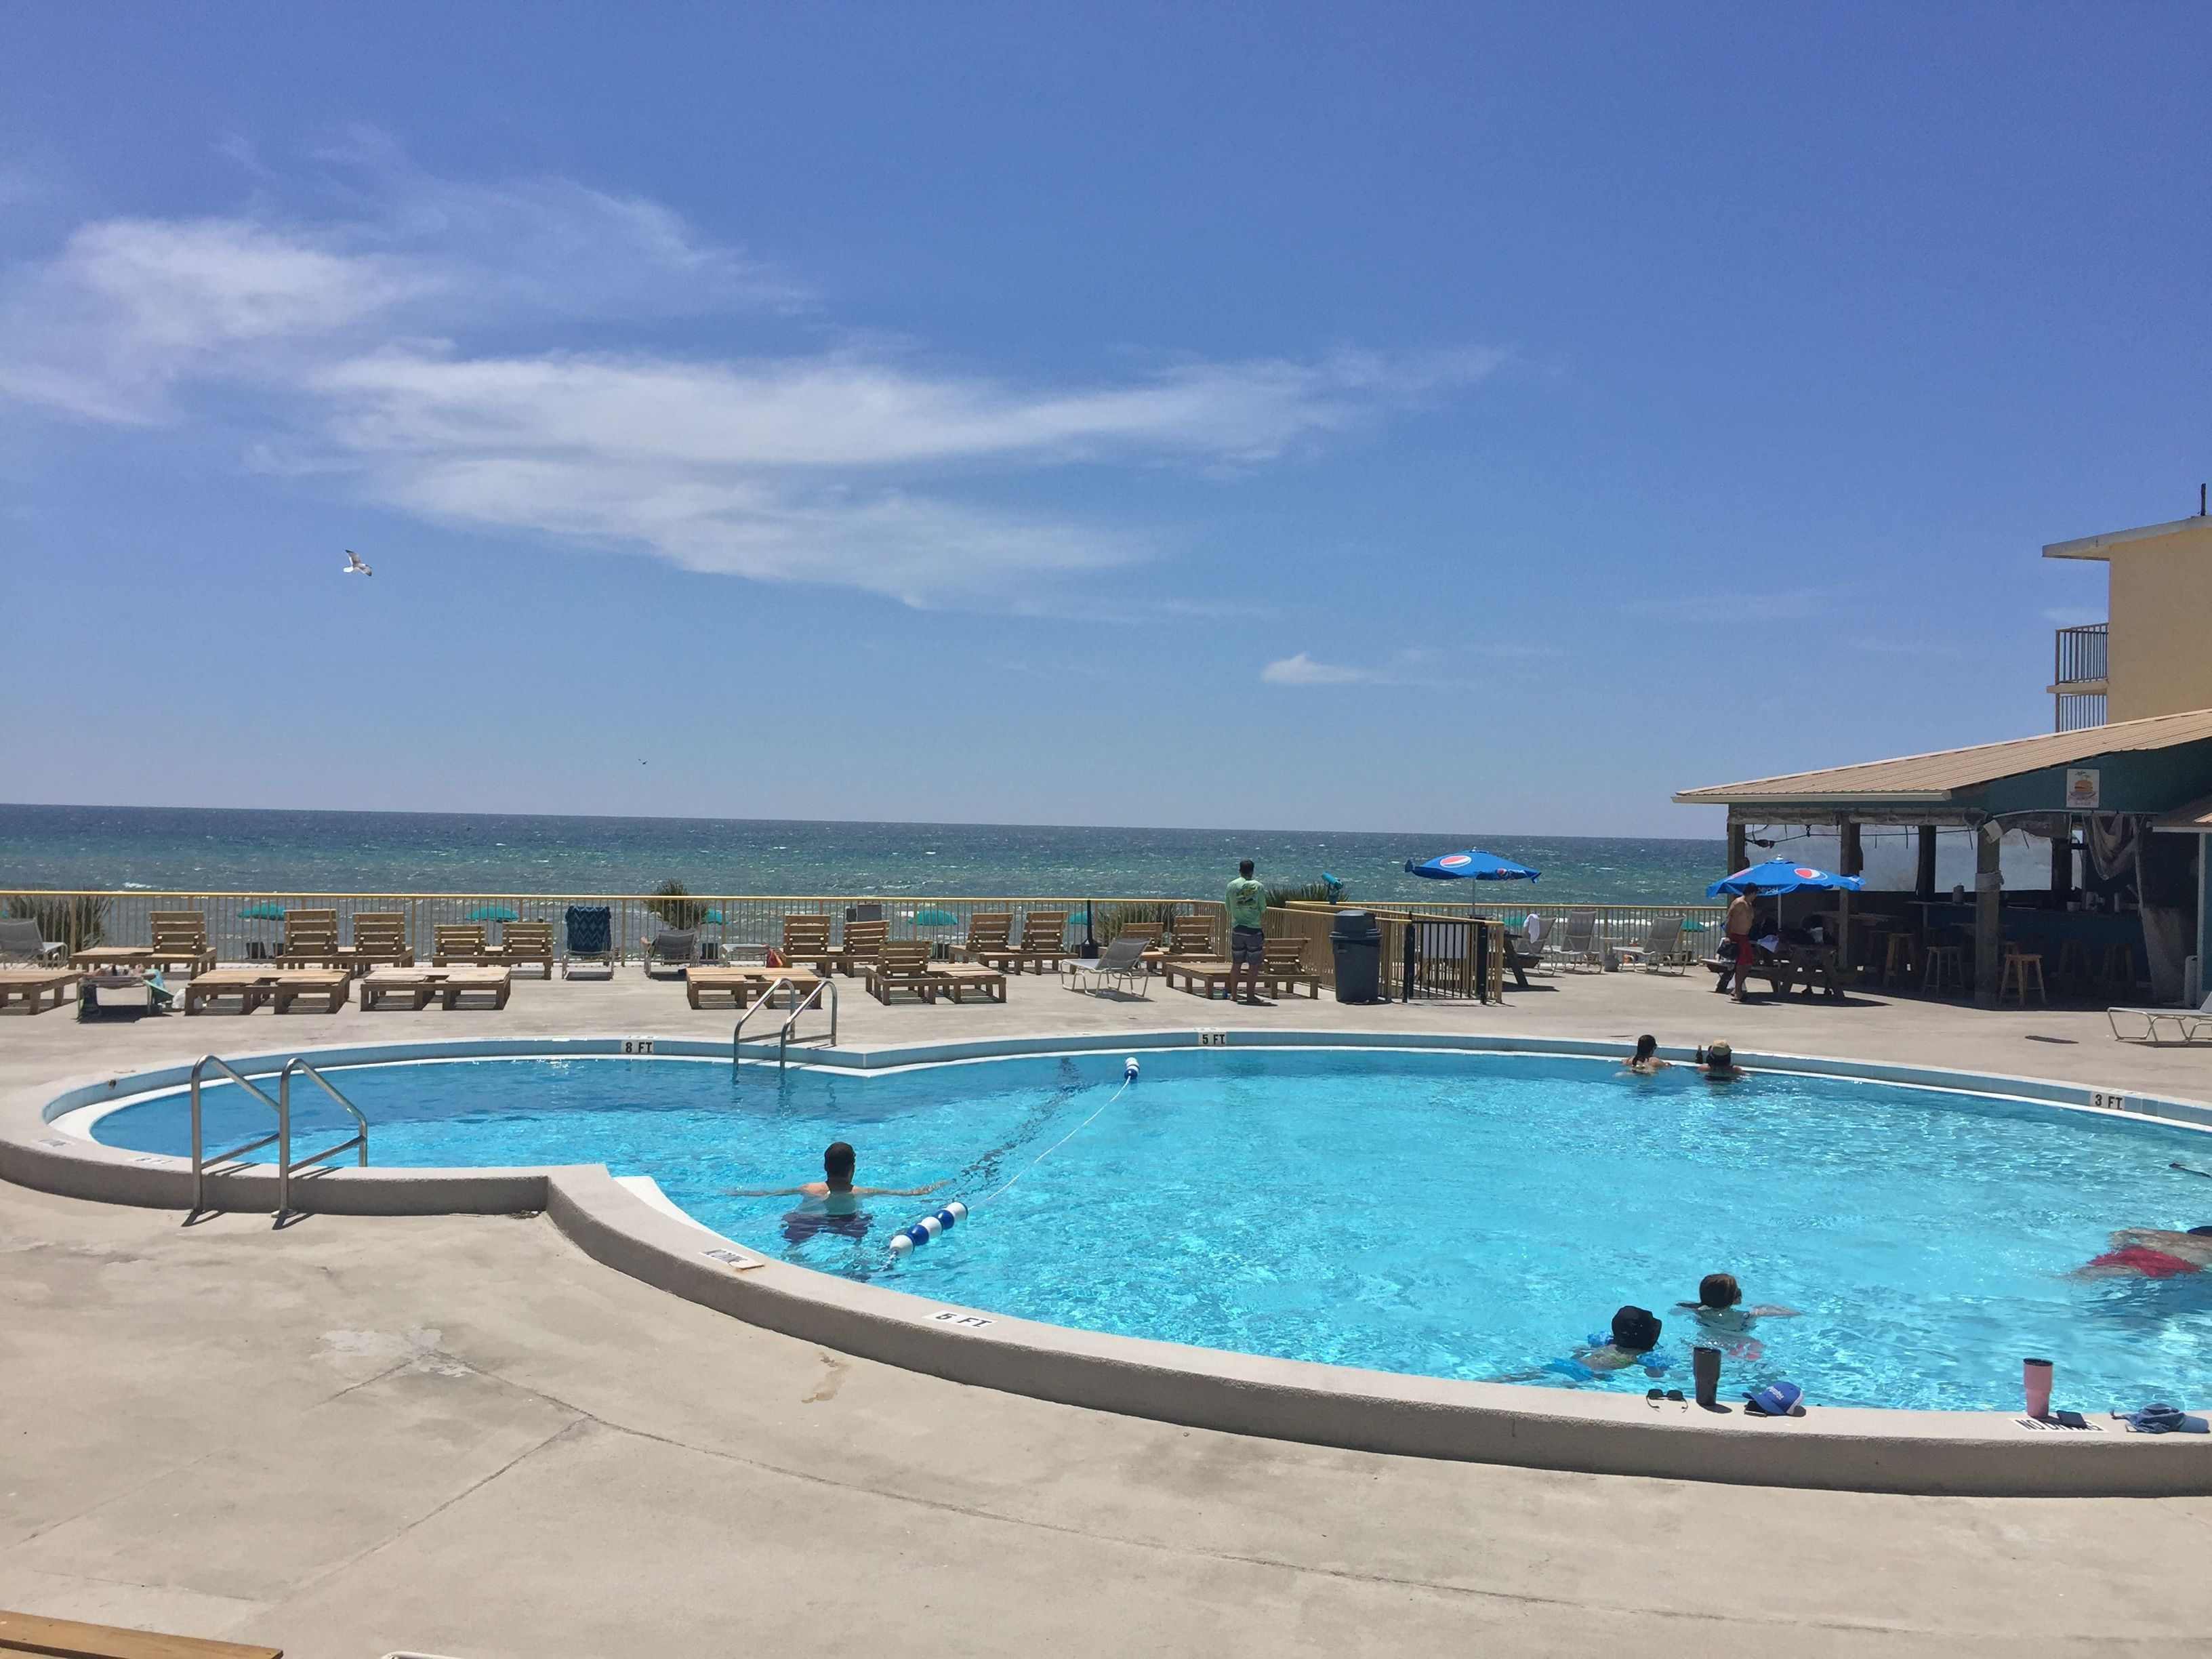 Hanging At The Pool And The Beach At Chateau By The Sea Which Also Has A Poolside Tiki Bar Tha Panama City Beach Resorts Panama City Panama Panama City Hotels